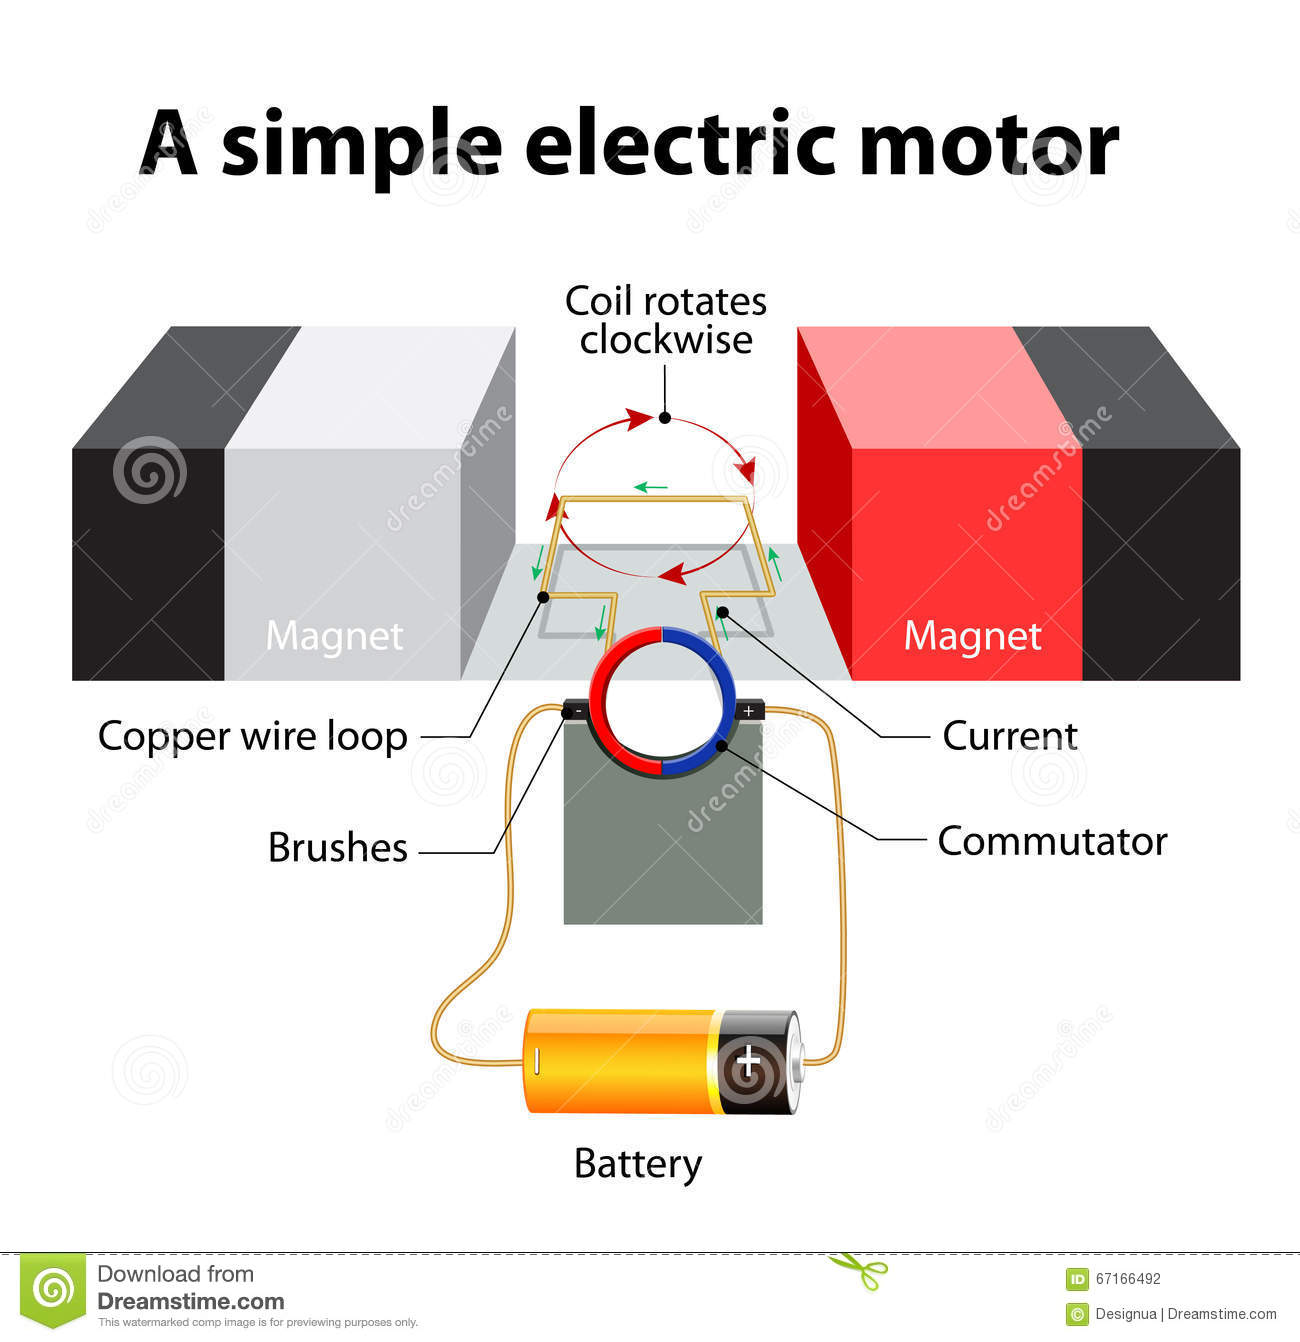 Simple Electric Motor Wiring Diagrams Diagram For Light 120v Asyncourous Diagramasyncourous Wire Vector Stock Illustration Of Rh Dreamstime Com Single Phase